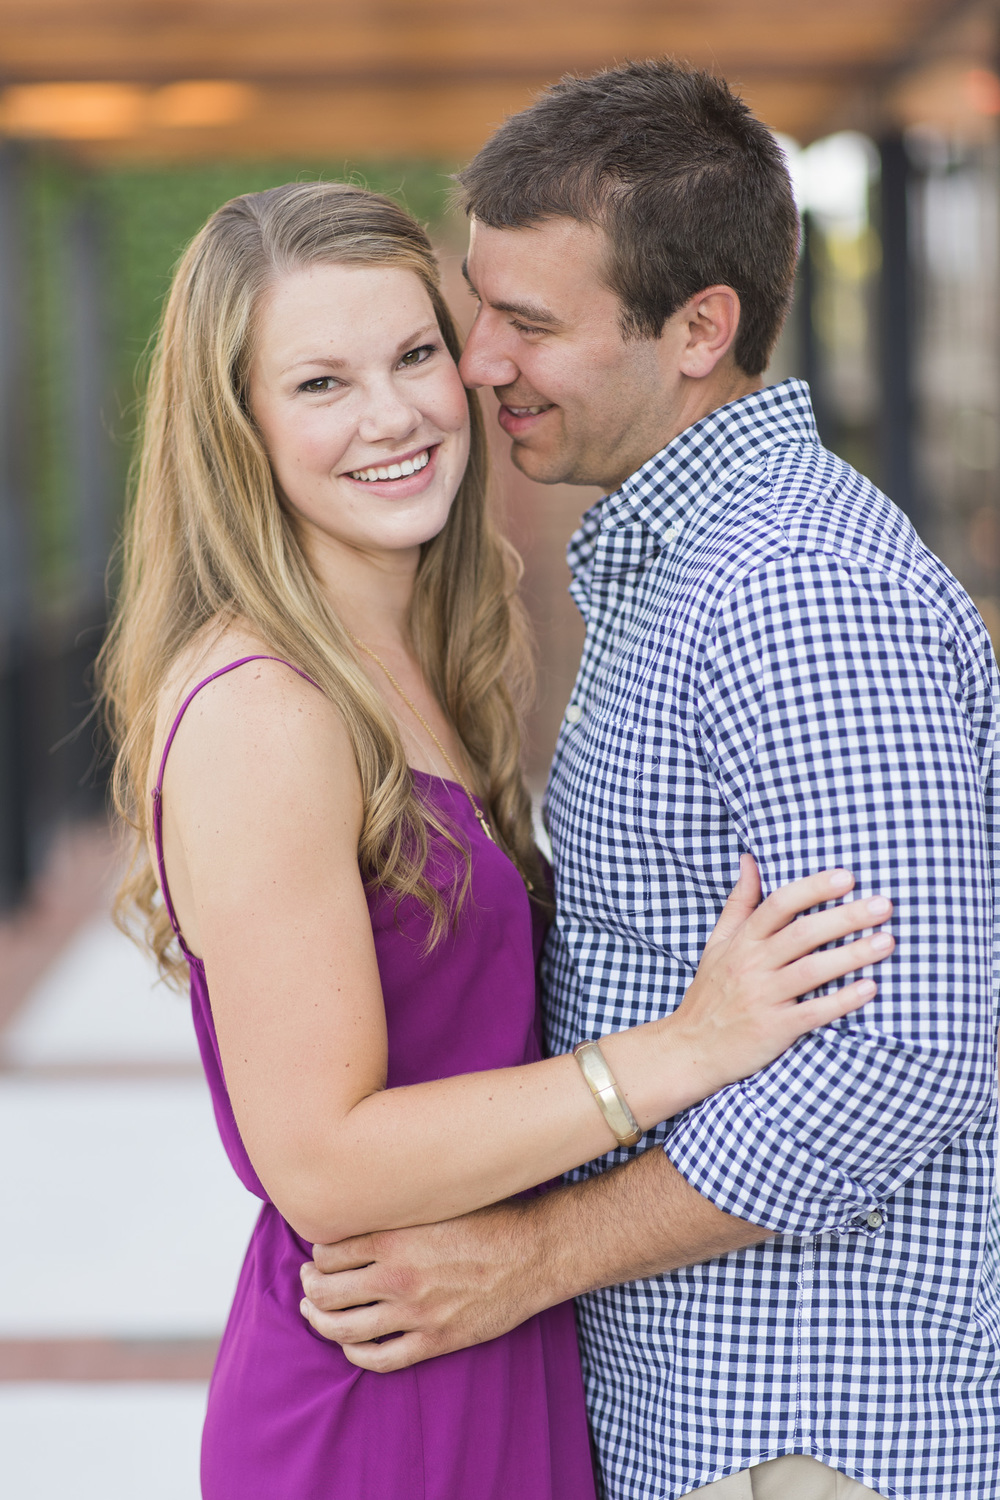 Downtown_Lynchburg_VA_craddock_Terry_Water_Fountain_Engagement_Session_Photos257.jpg